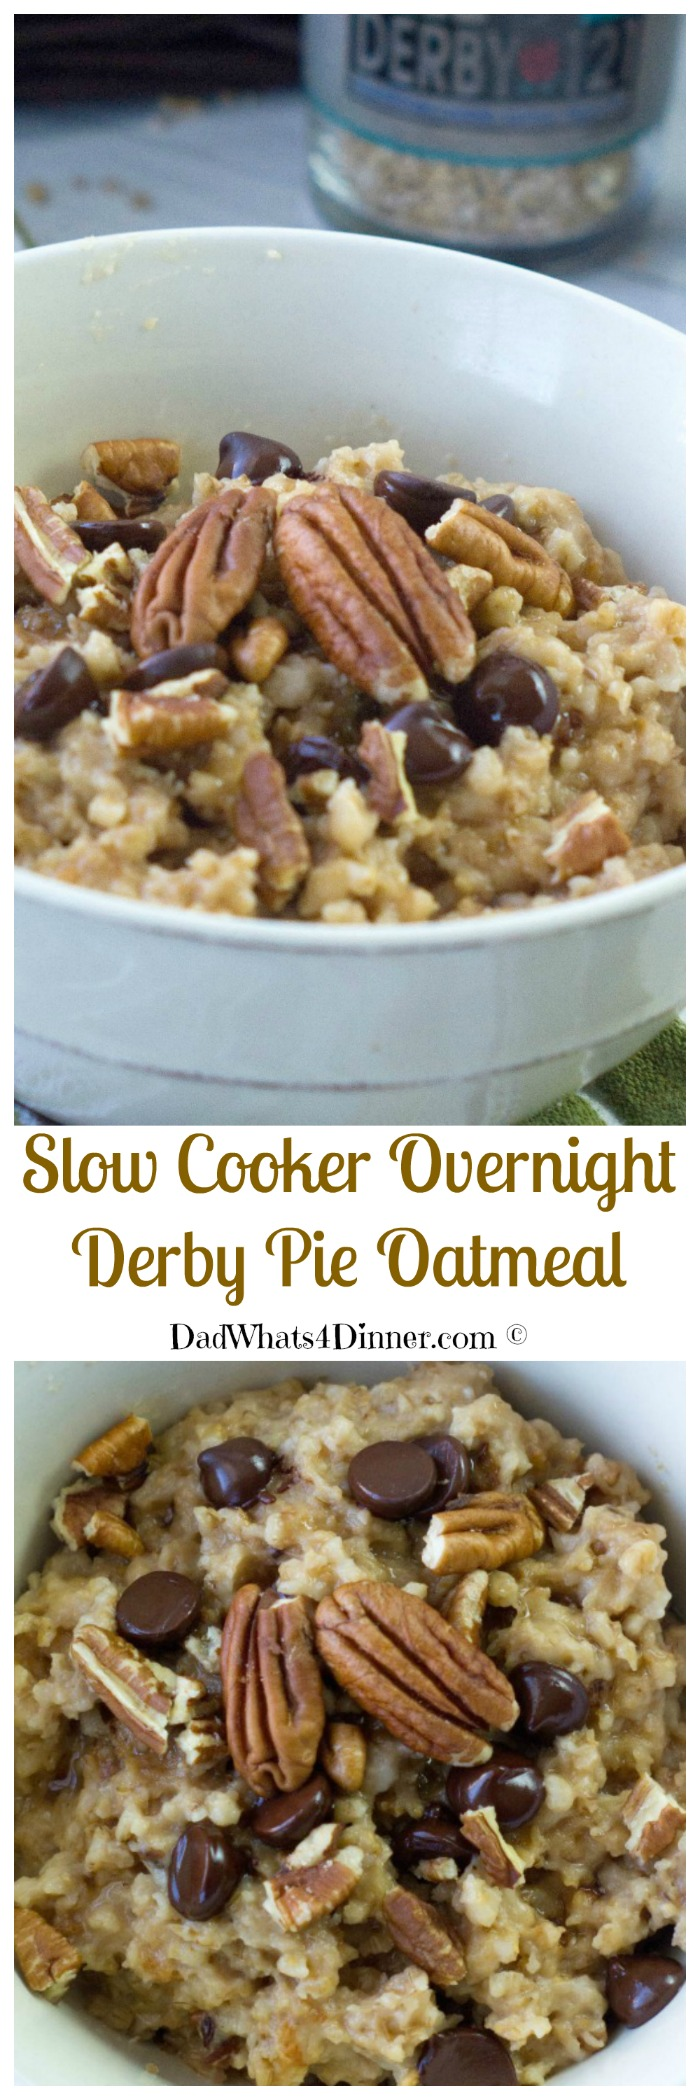 What did he say? Derby Pie for Breakfast! Yes, sir, with my Slow Cooker Overnight Derby Pie Oatmeal Recipe!